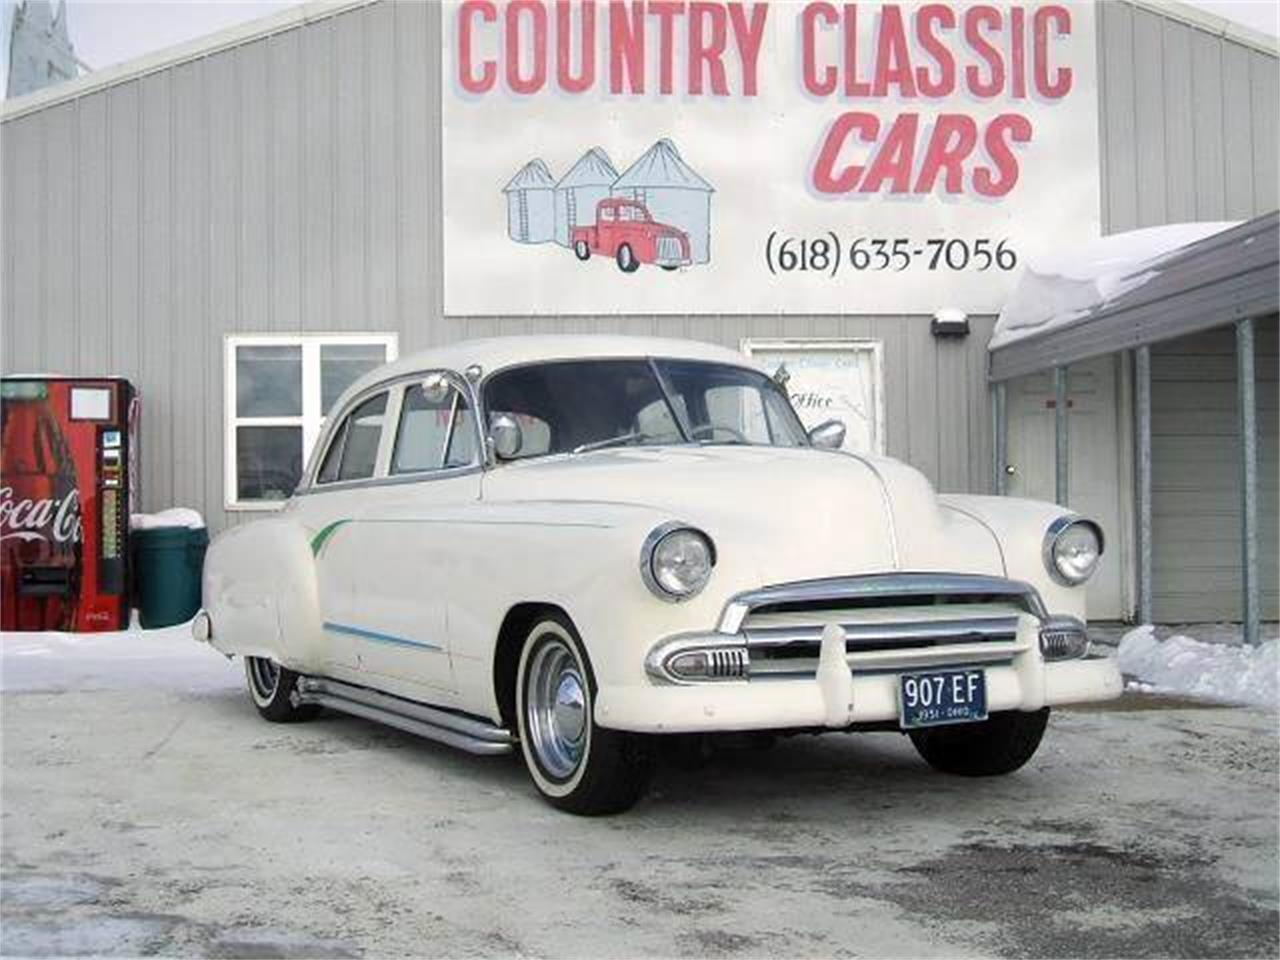 Large Picture of '51 Chevrolet Street Rod located in Illinois - $8,250.00 - K3ZE